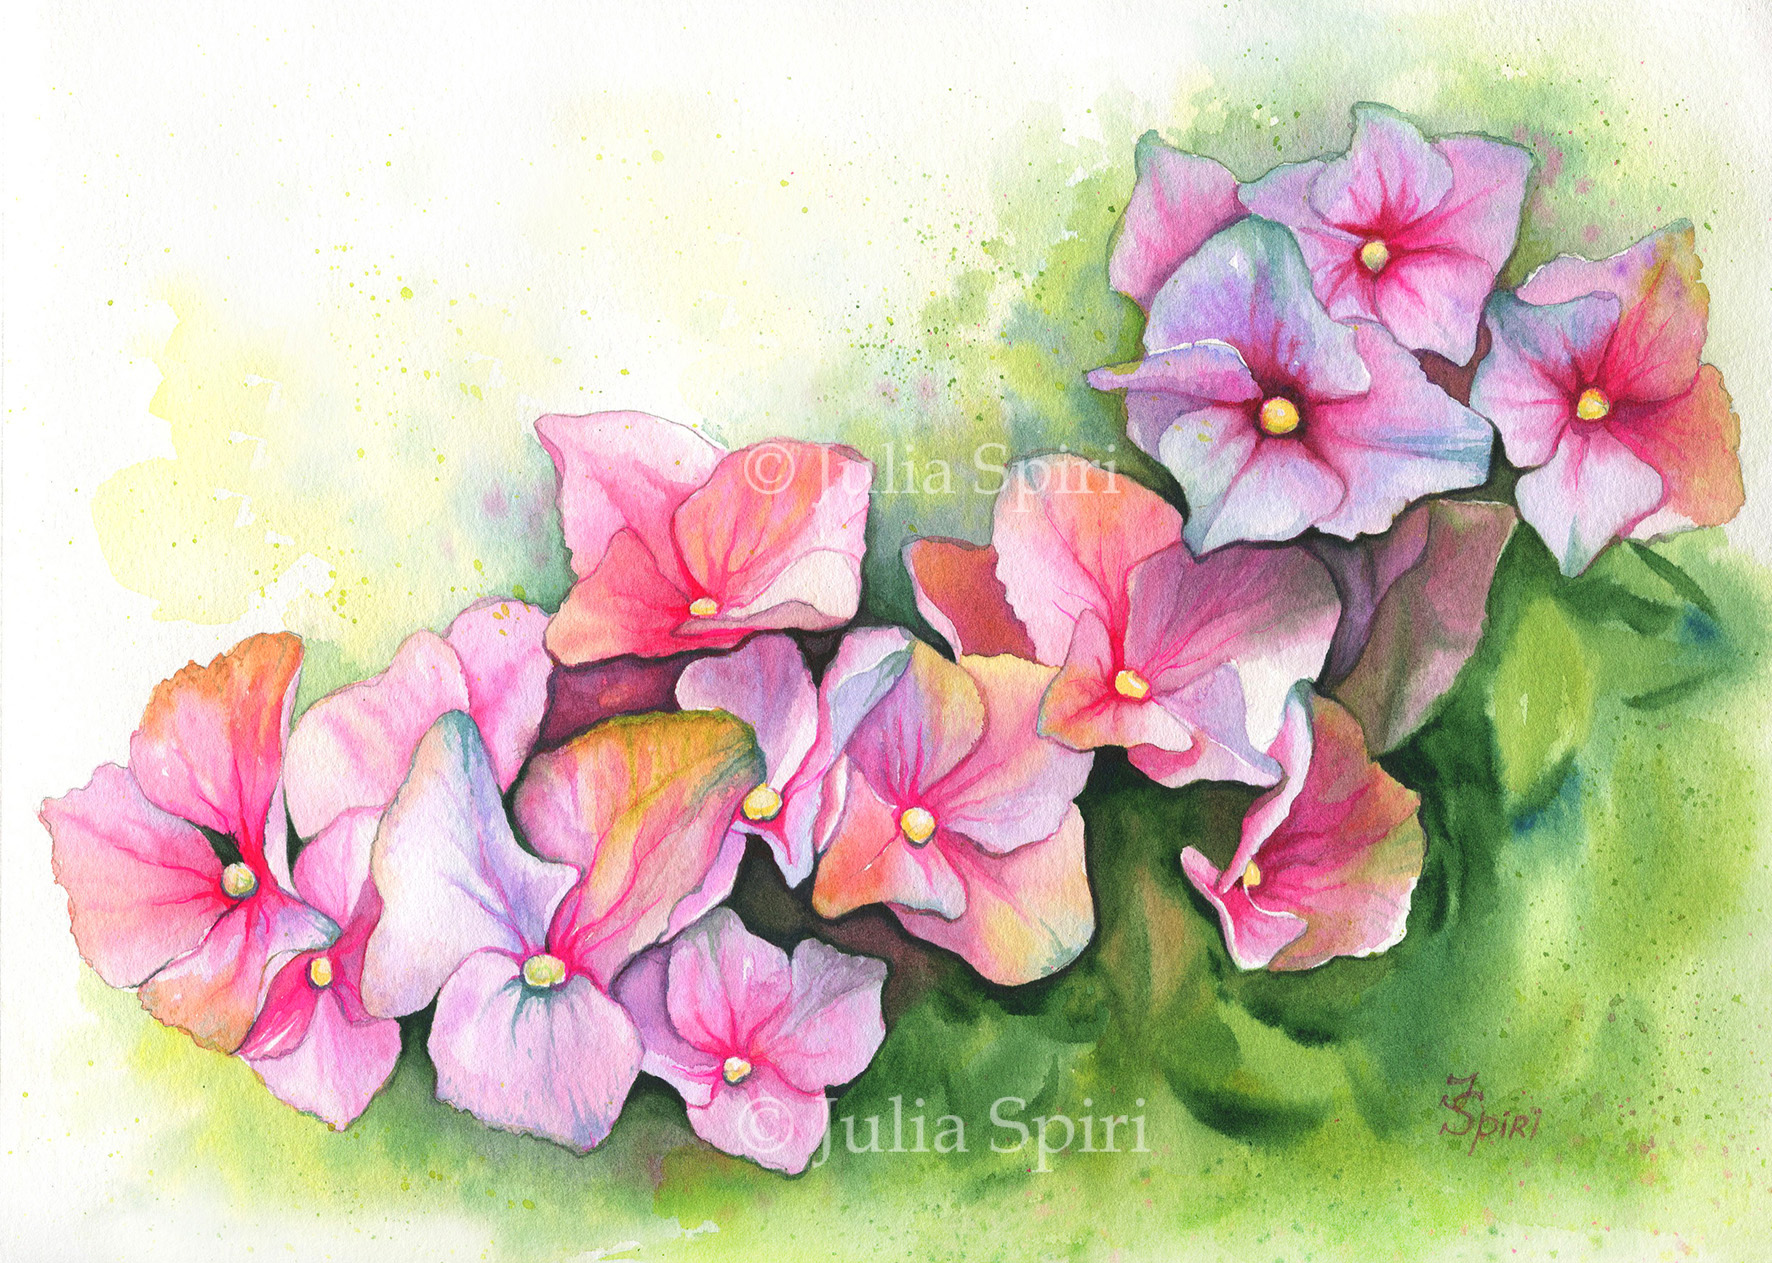 Hydrangea Flowers The Art Of Julia Spiri